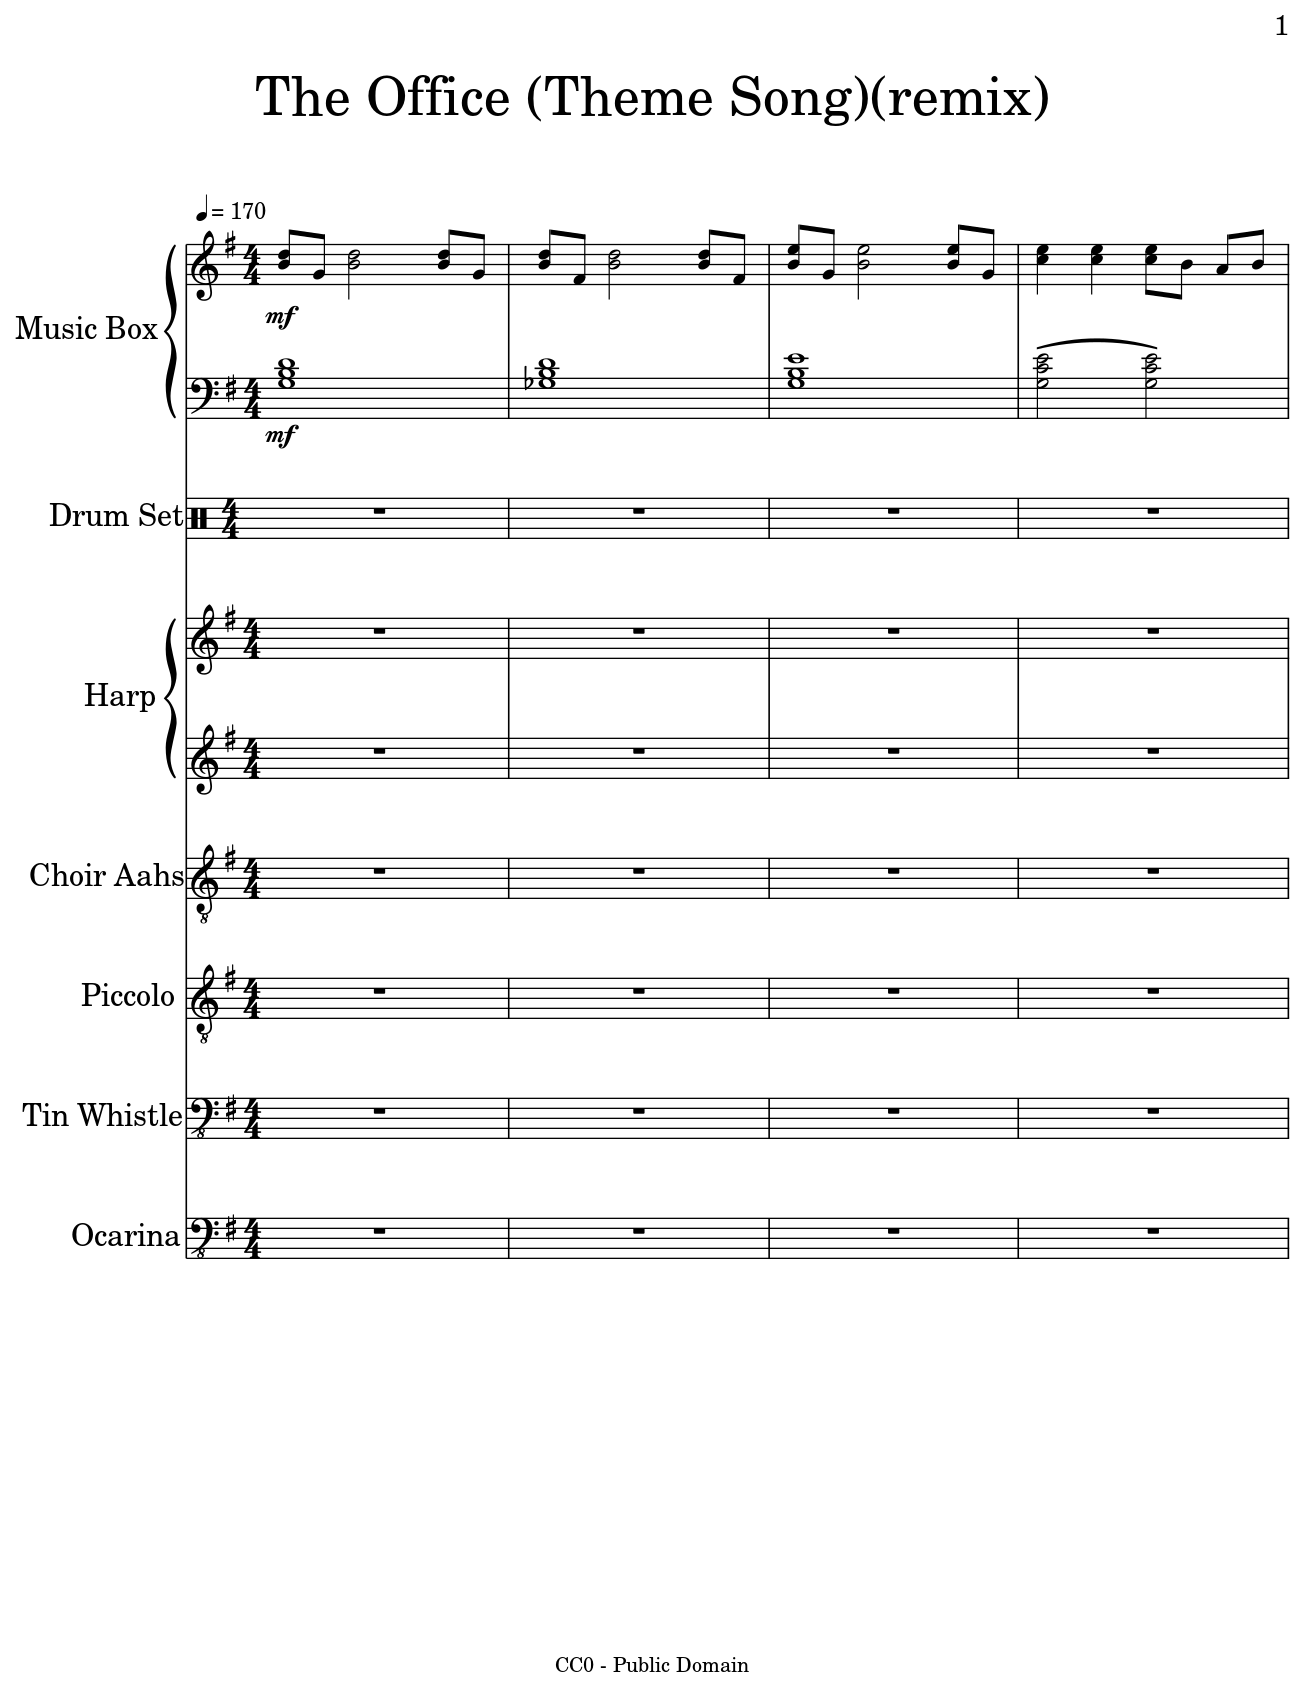 the office theme song remix sheet music for music box drum set